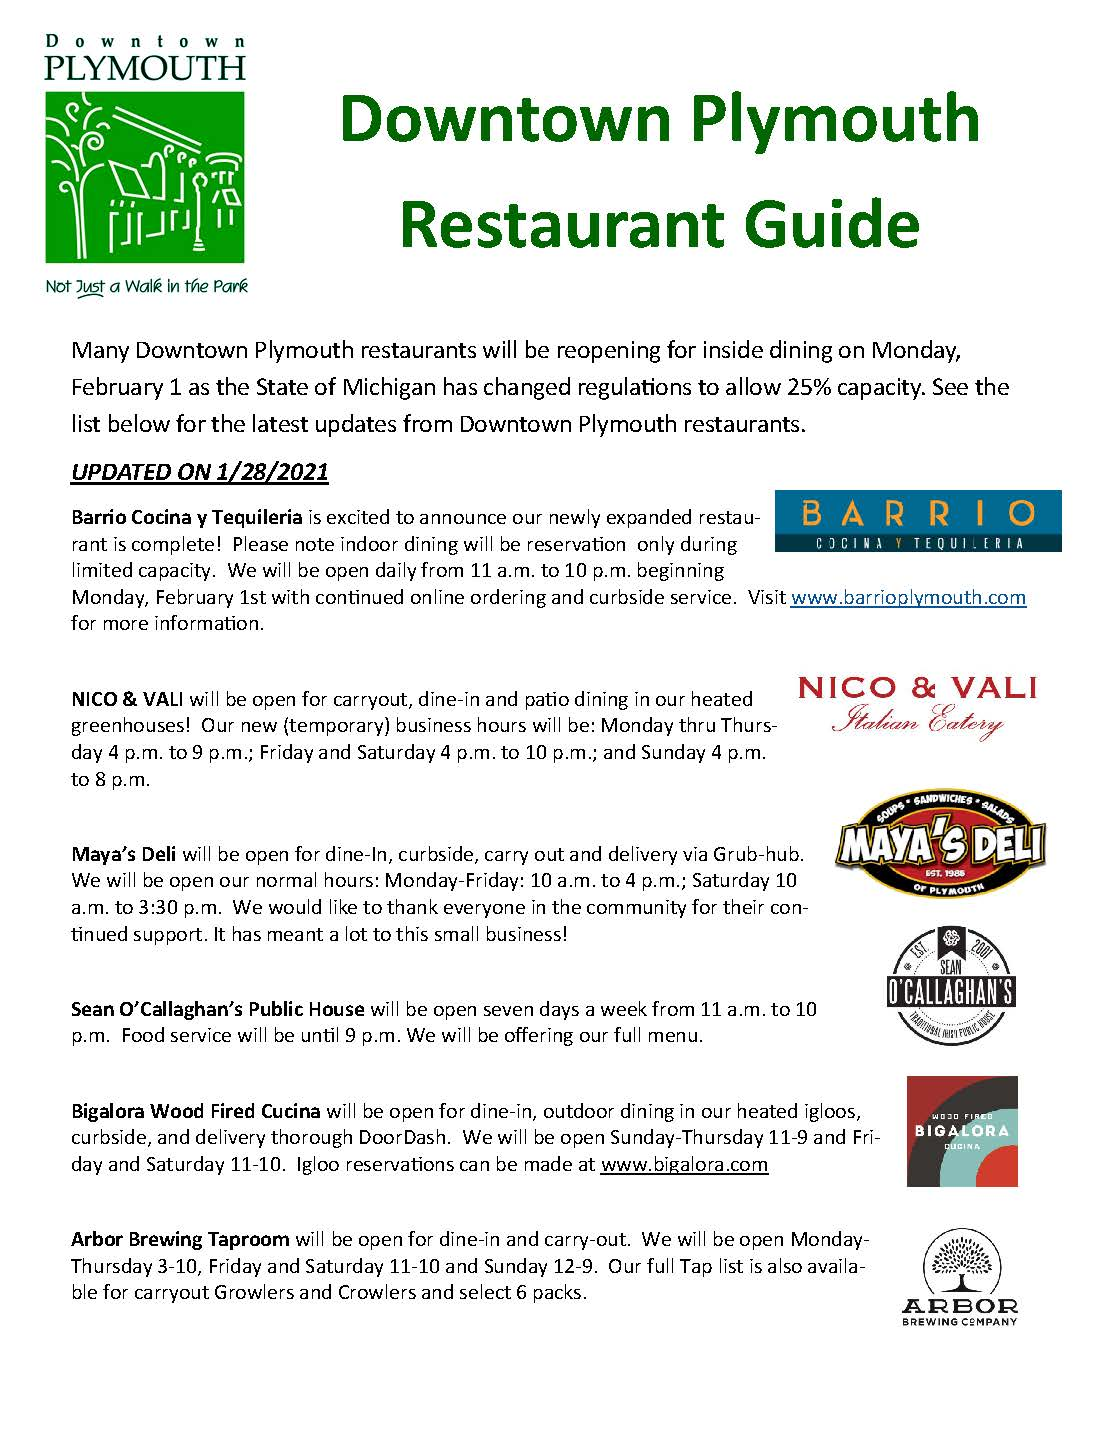 Downtown Plymouth Restaurant Guide 1-28-21